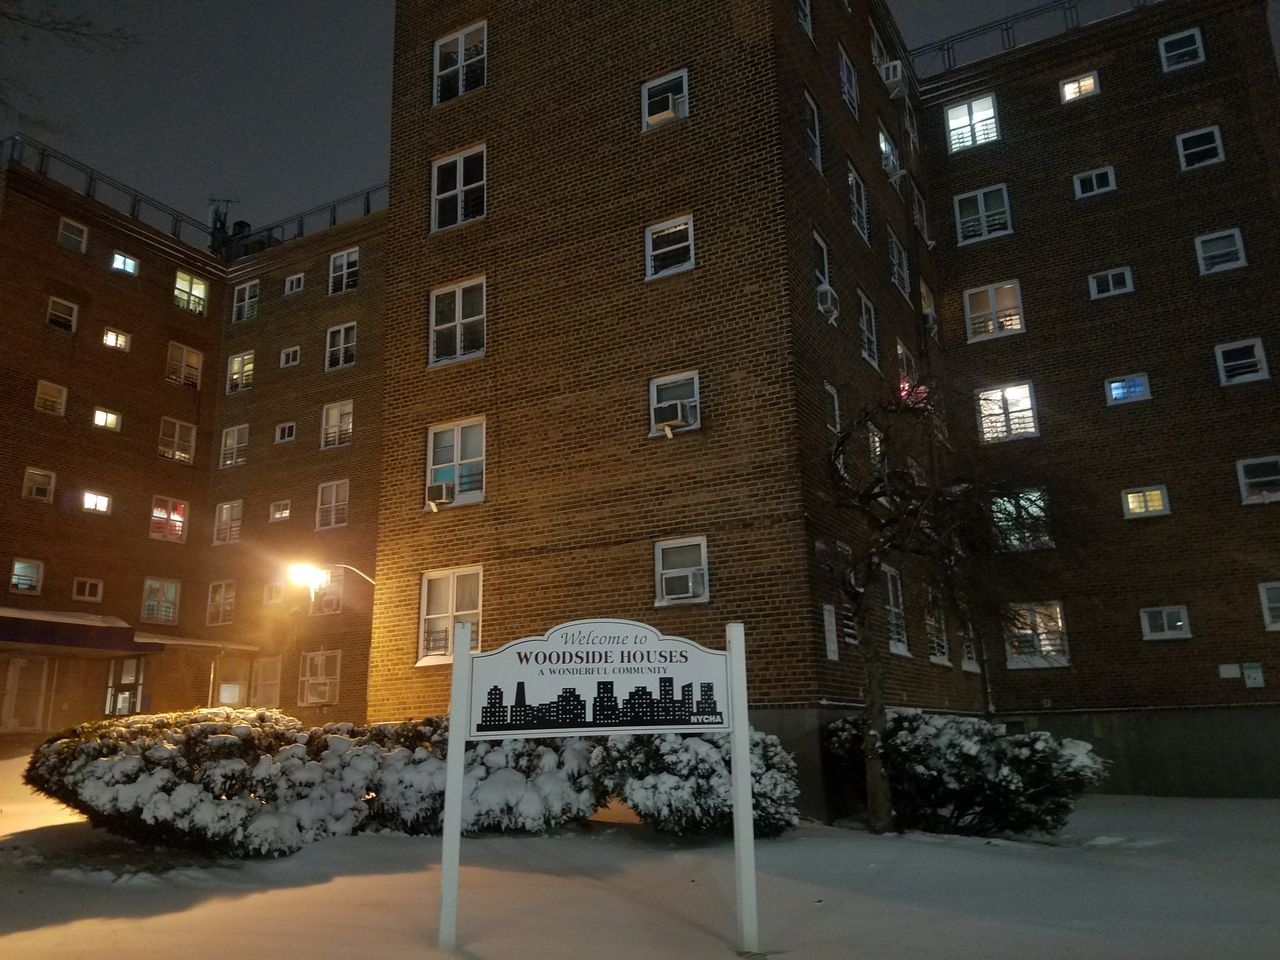 The Woodside Houses, where more than 1,300 units were without heat Thursday